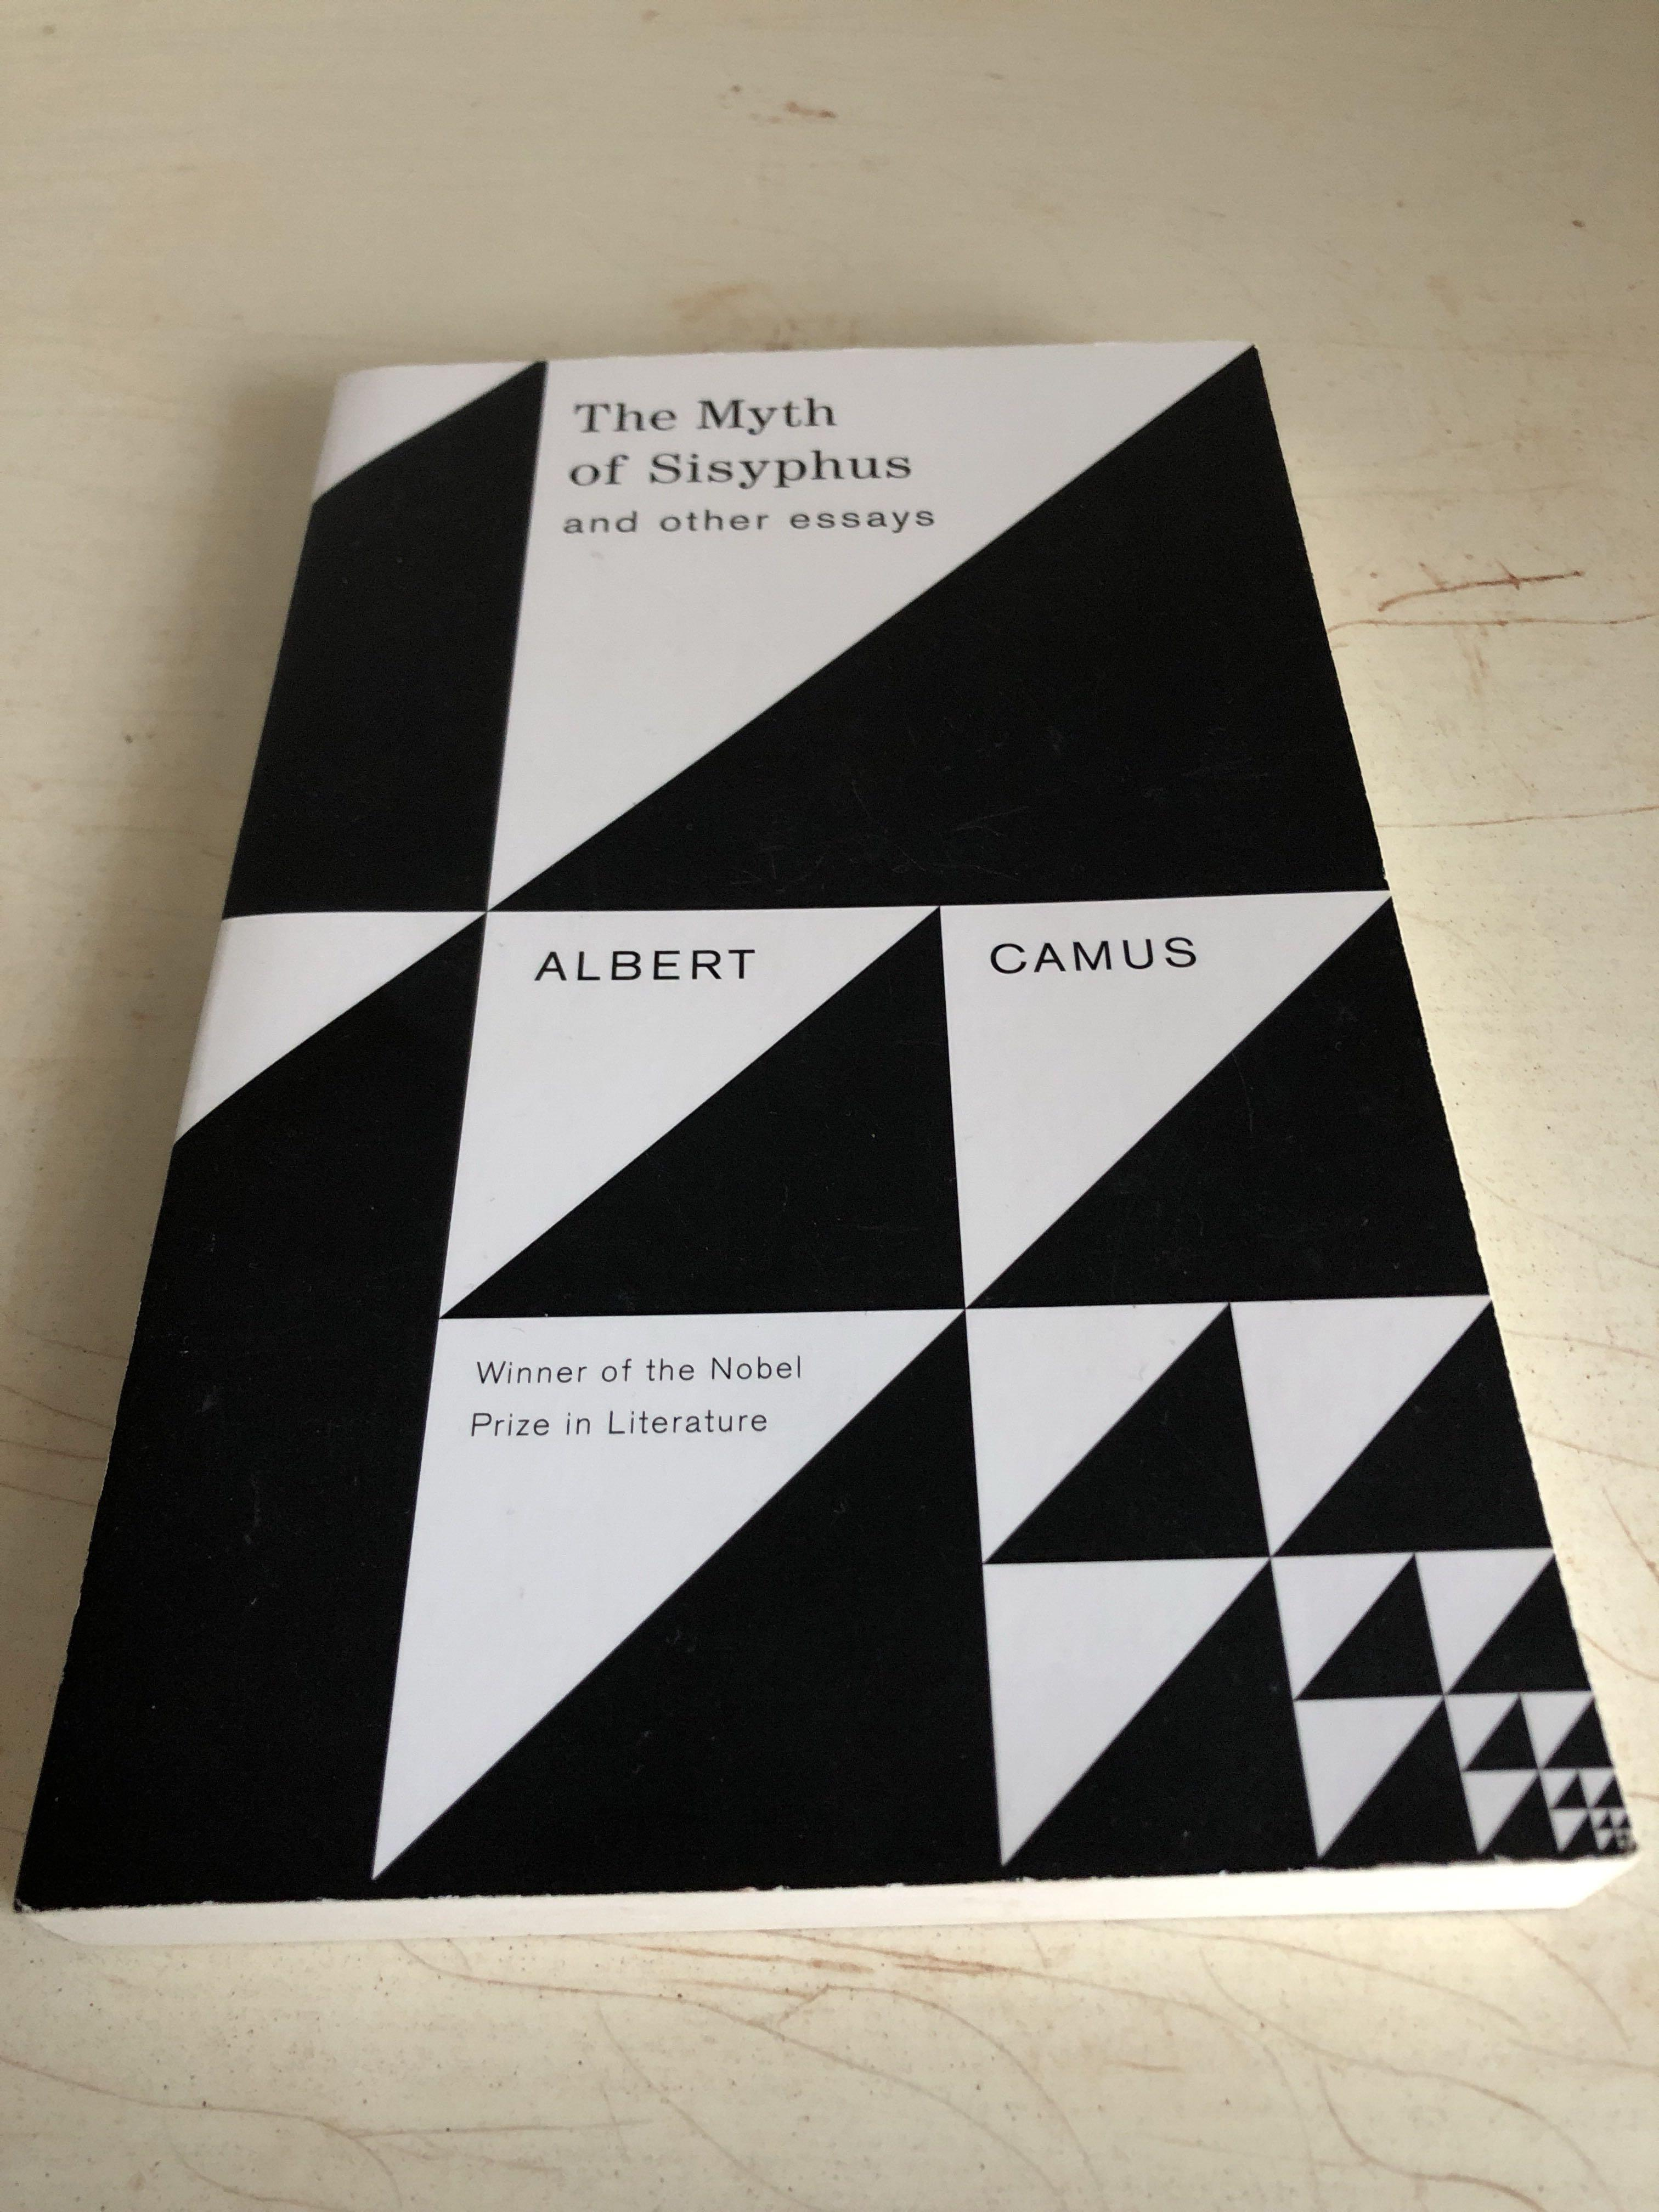 the myth of sisyphus and other essays- albert camus- vintage books